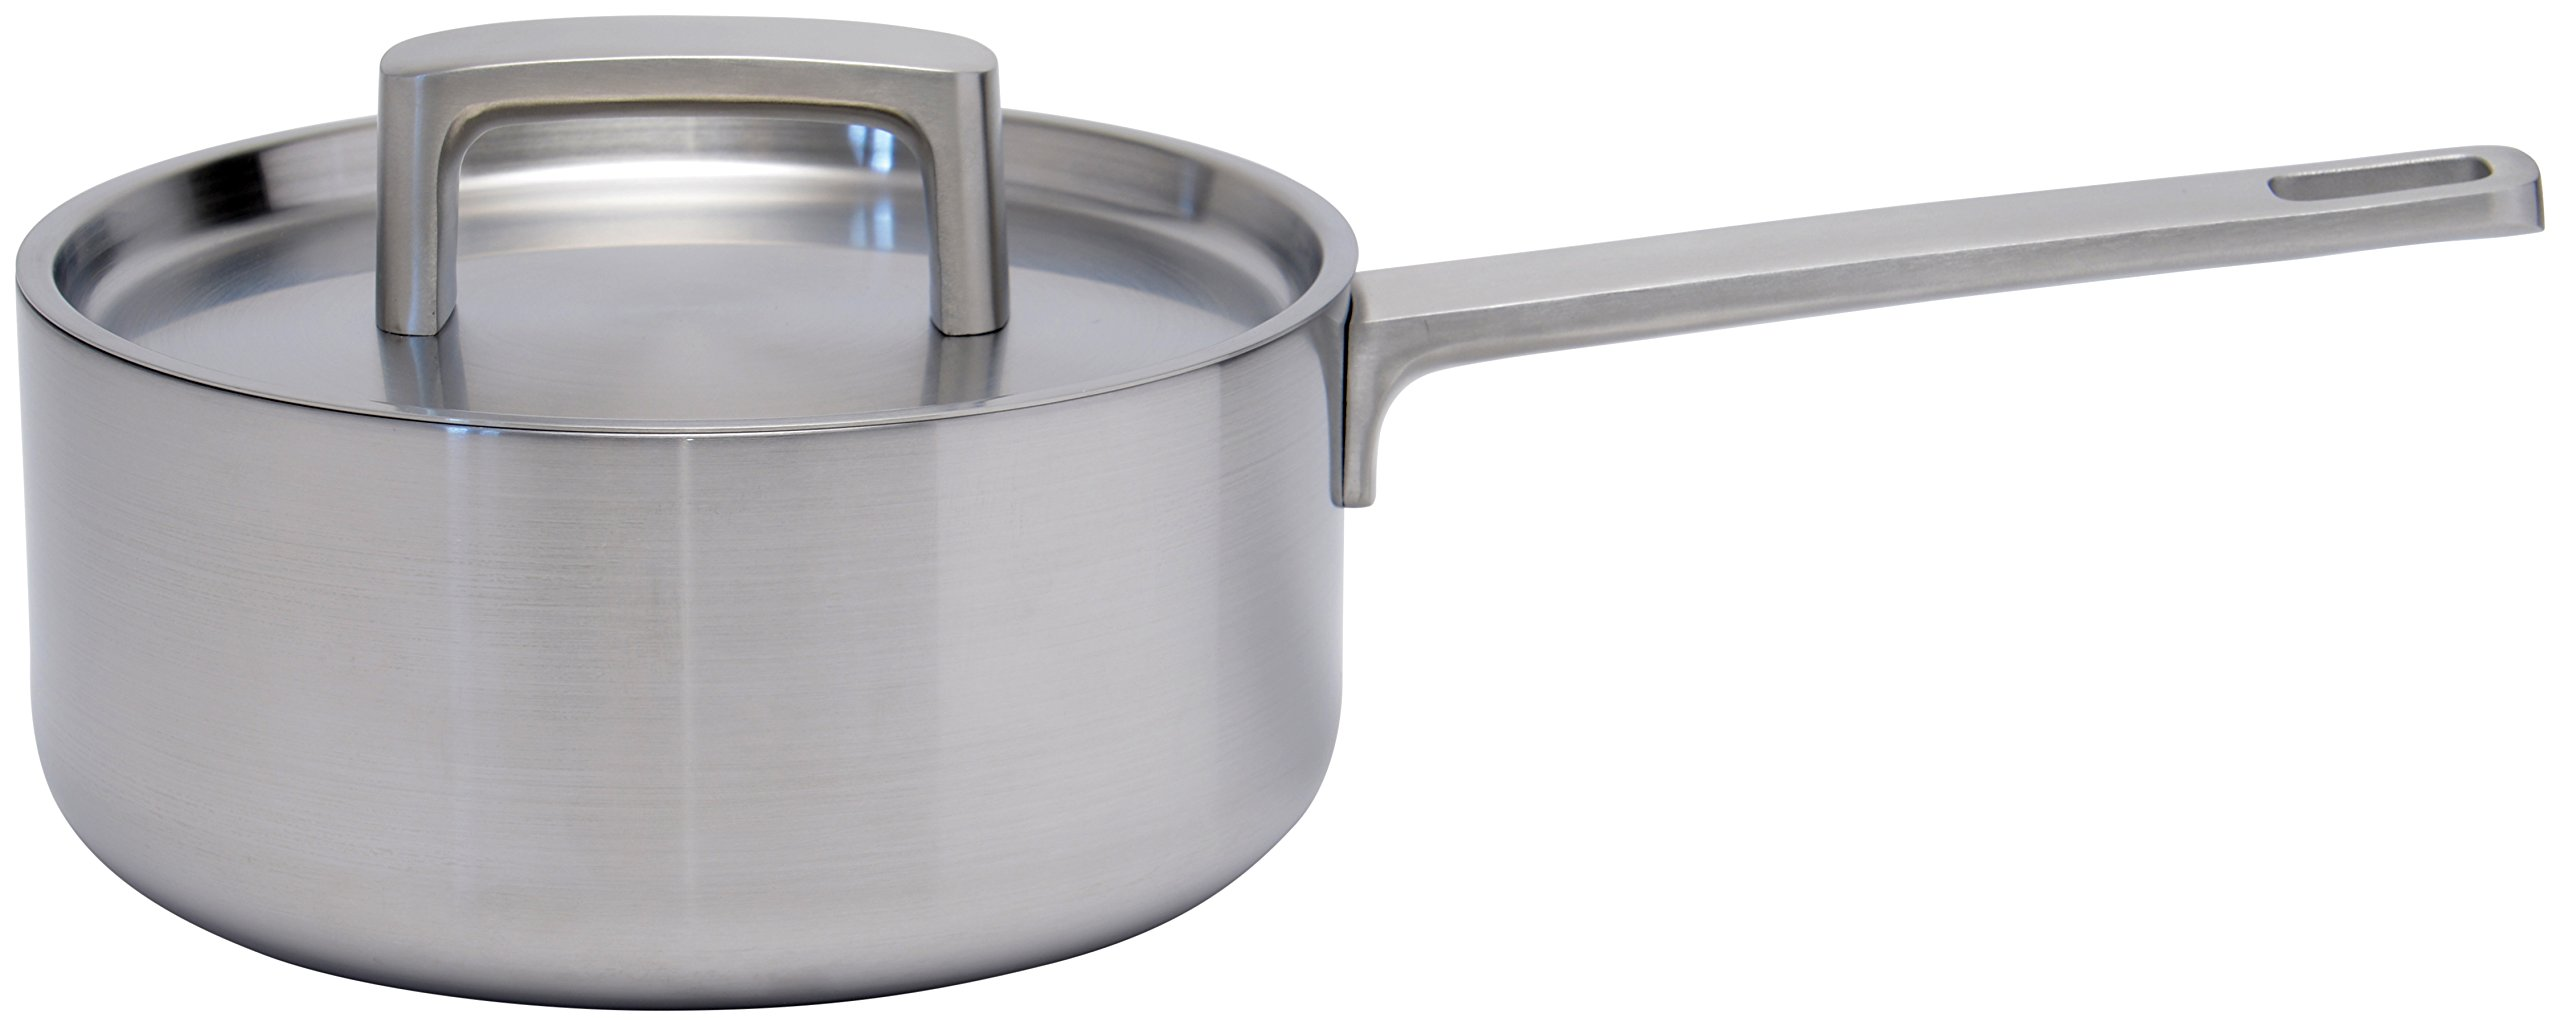 BergHOFF 3900030 Ron 5-Ply Covered Sauce Pan, 7''/2.1 quart, Silver